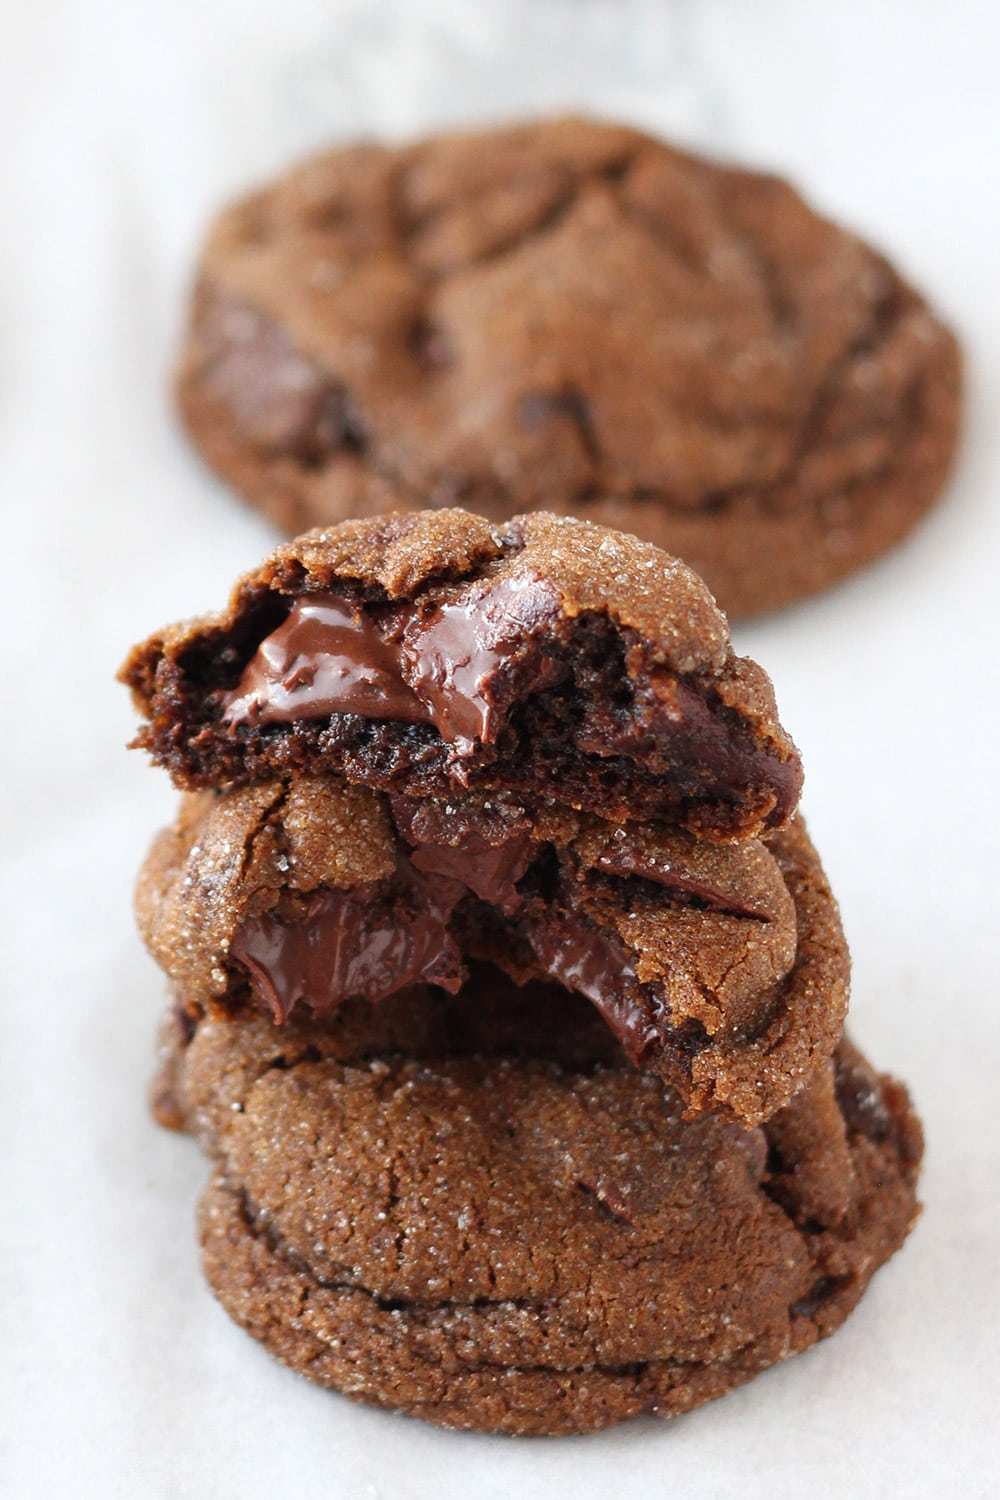 soft and chewy chocolate gingerbread cookies stacked on top of each other